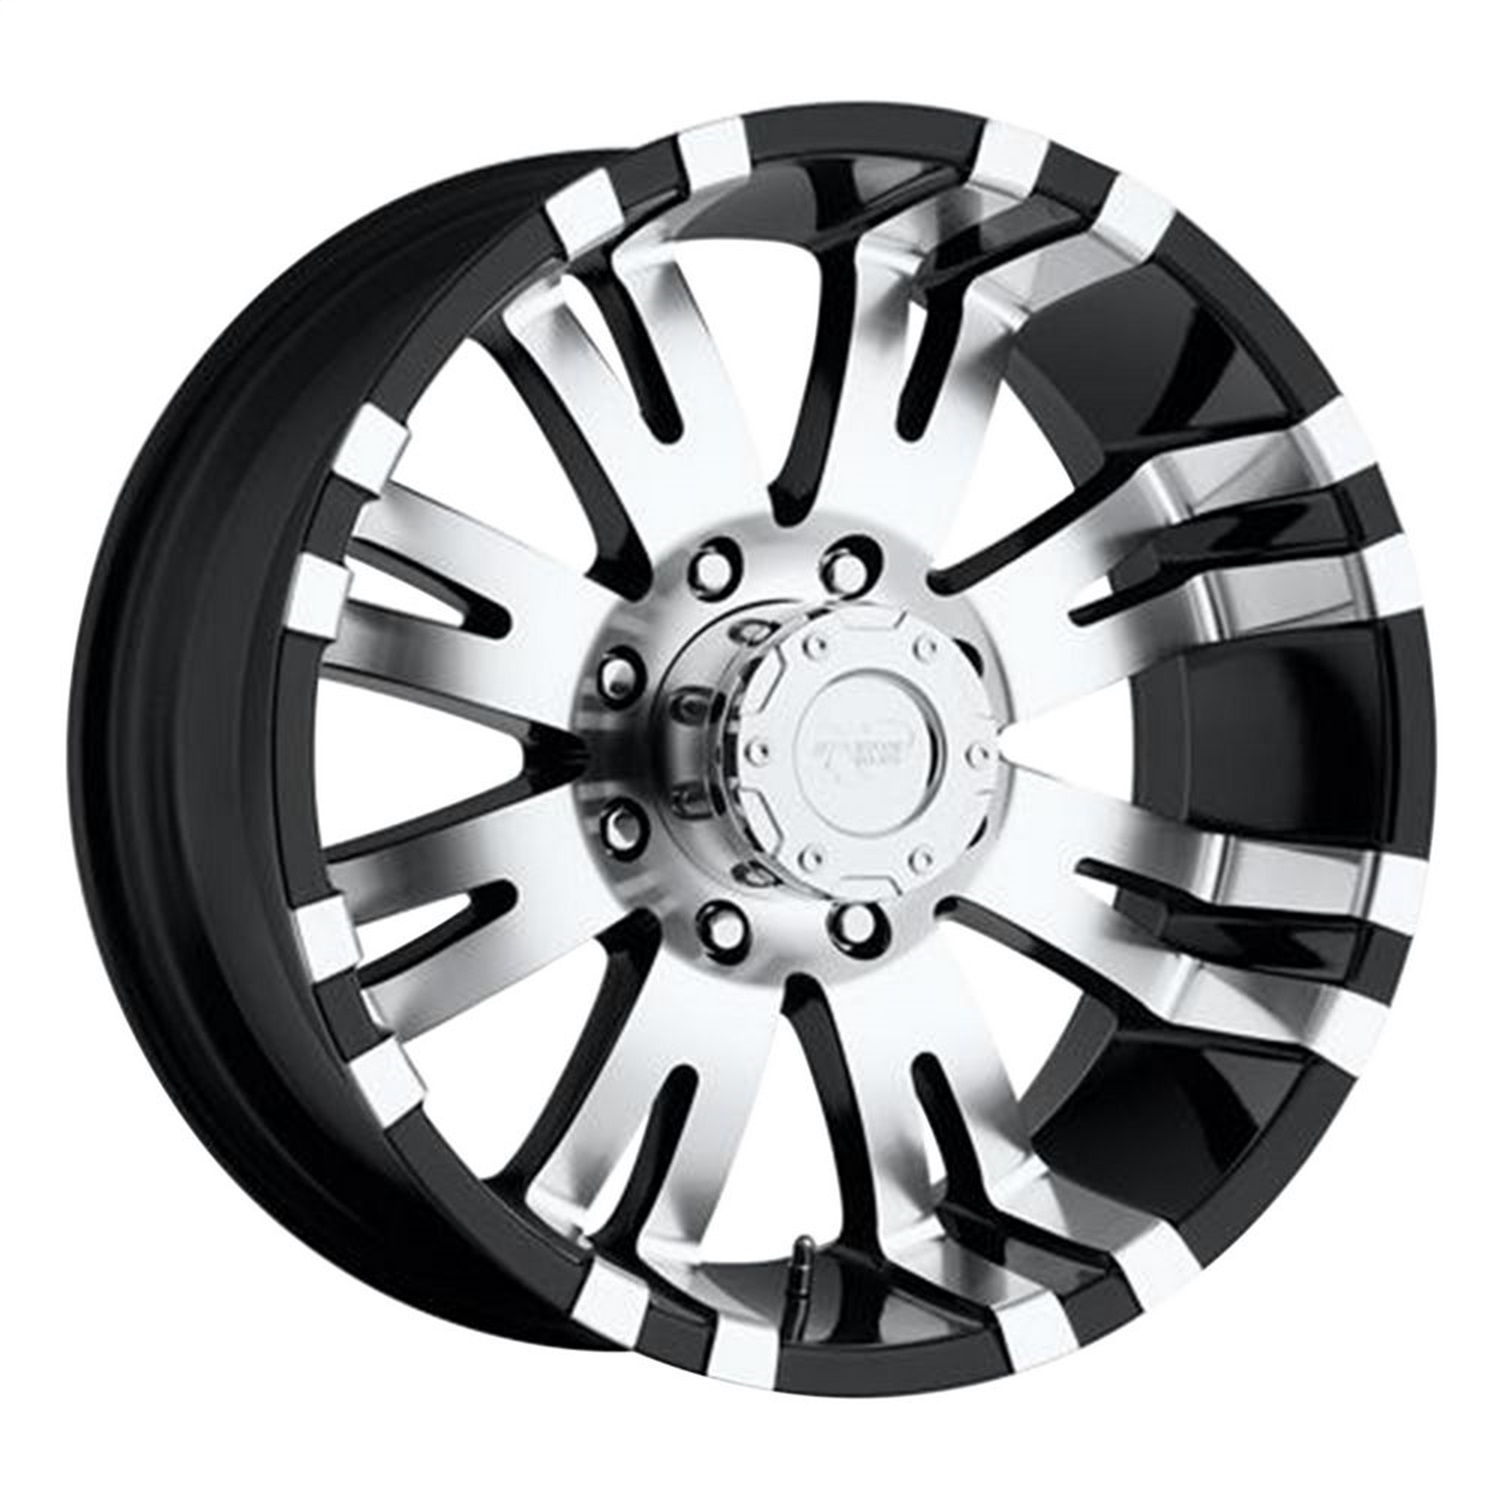 Pro Comp Wheels Comp Alloy 8101-7983 Xtreme Alloys Series 8101 Gloss Black w/Machined Finish  Size 17x9  Bolt Pattern 6x5.5 in.  Back Space 4.7 at Sears.com